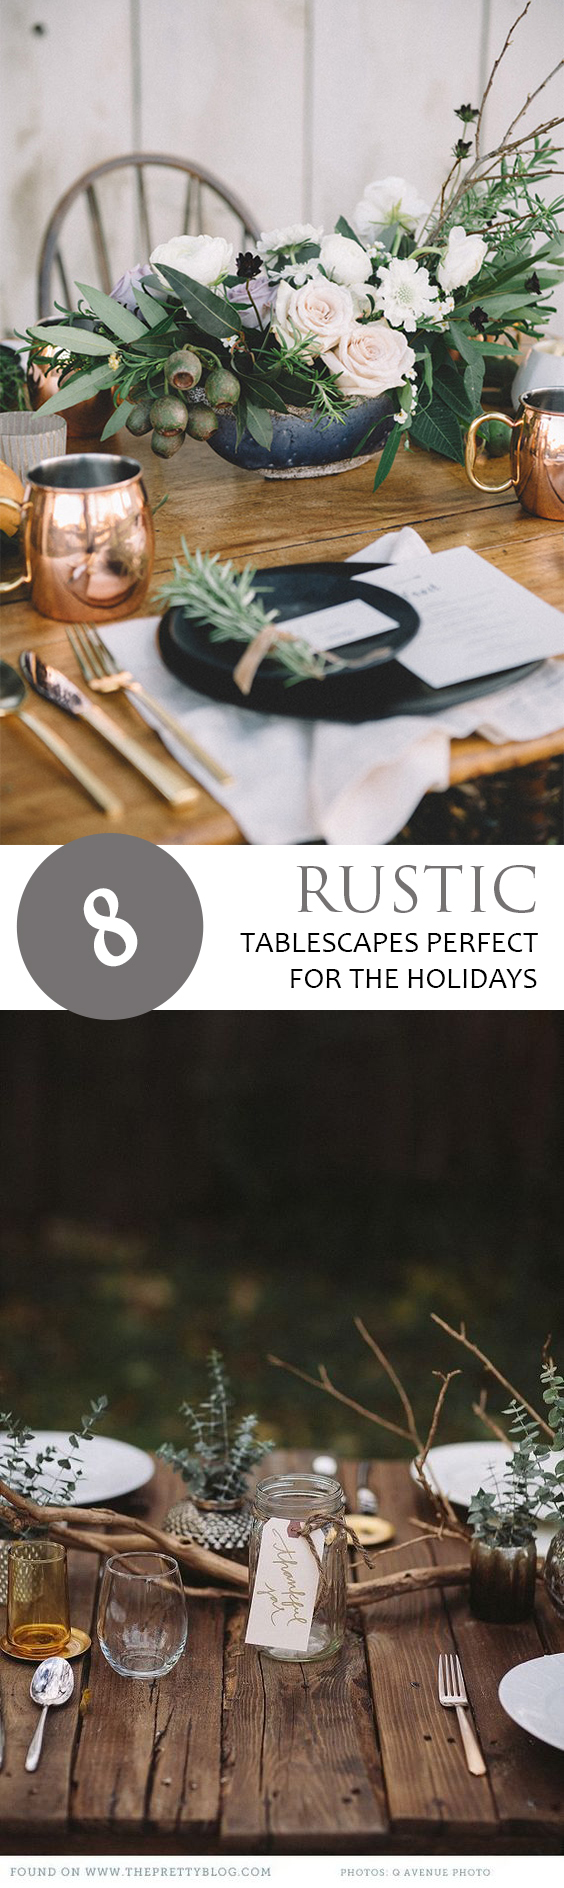 Rustic Tablescape Ideas, Rustic Holiday Tablescape, Holiday Tablescape Hacks, Popular Pin, Rustic Table, Rustic Holiday Decor, Rustic Holiday Home Decor, Popular Pin, Easy Holiday Tablescapes